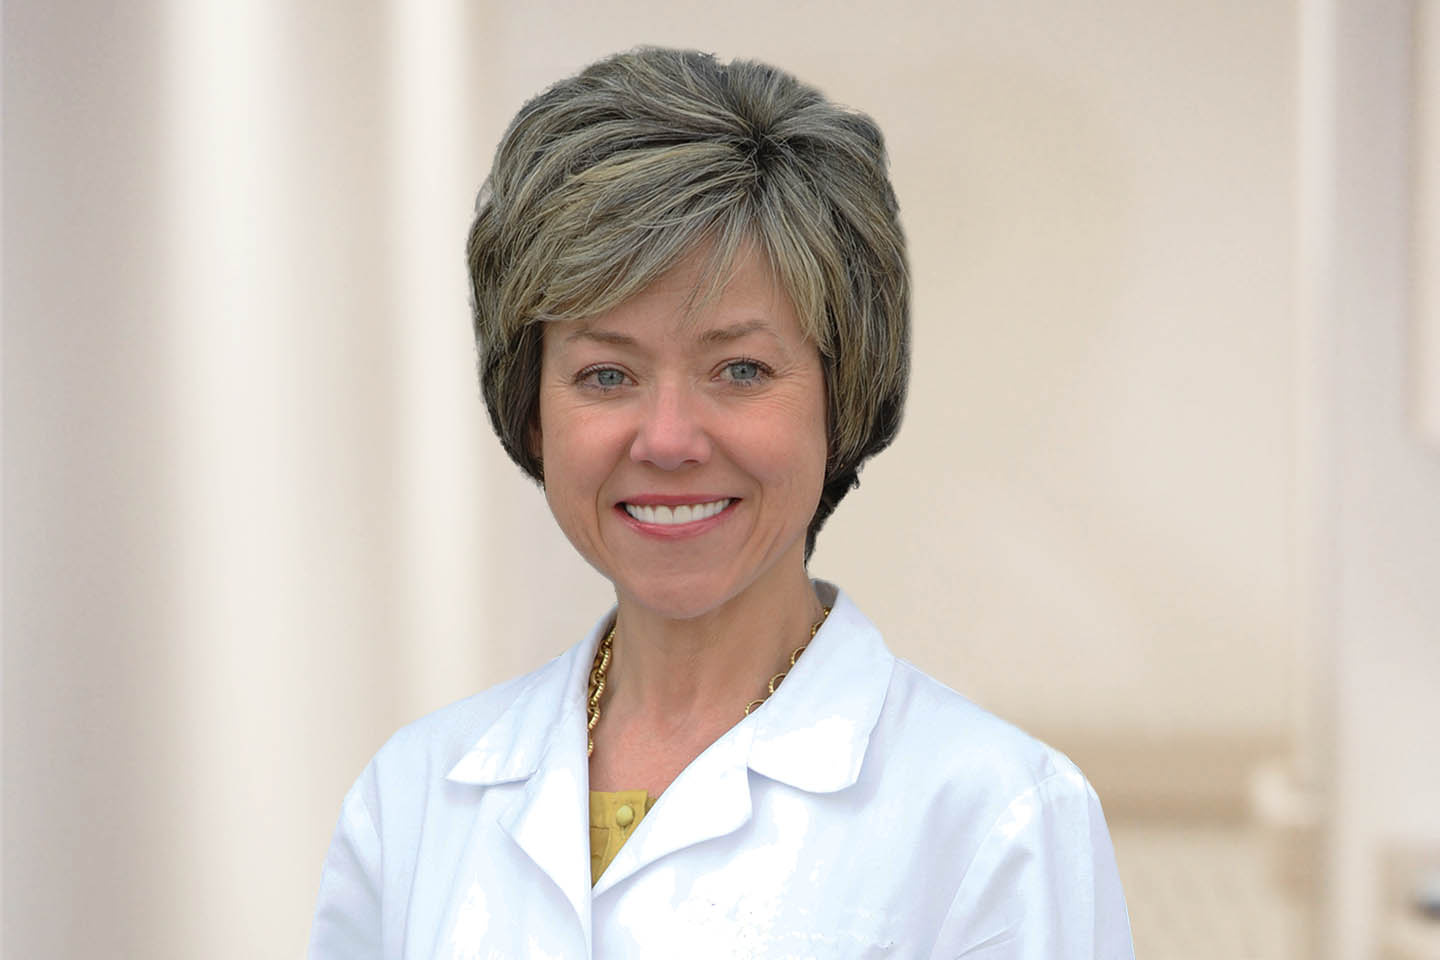 Vickie Morgan, MD